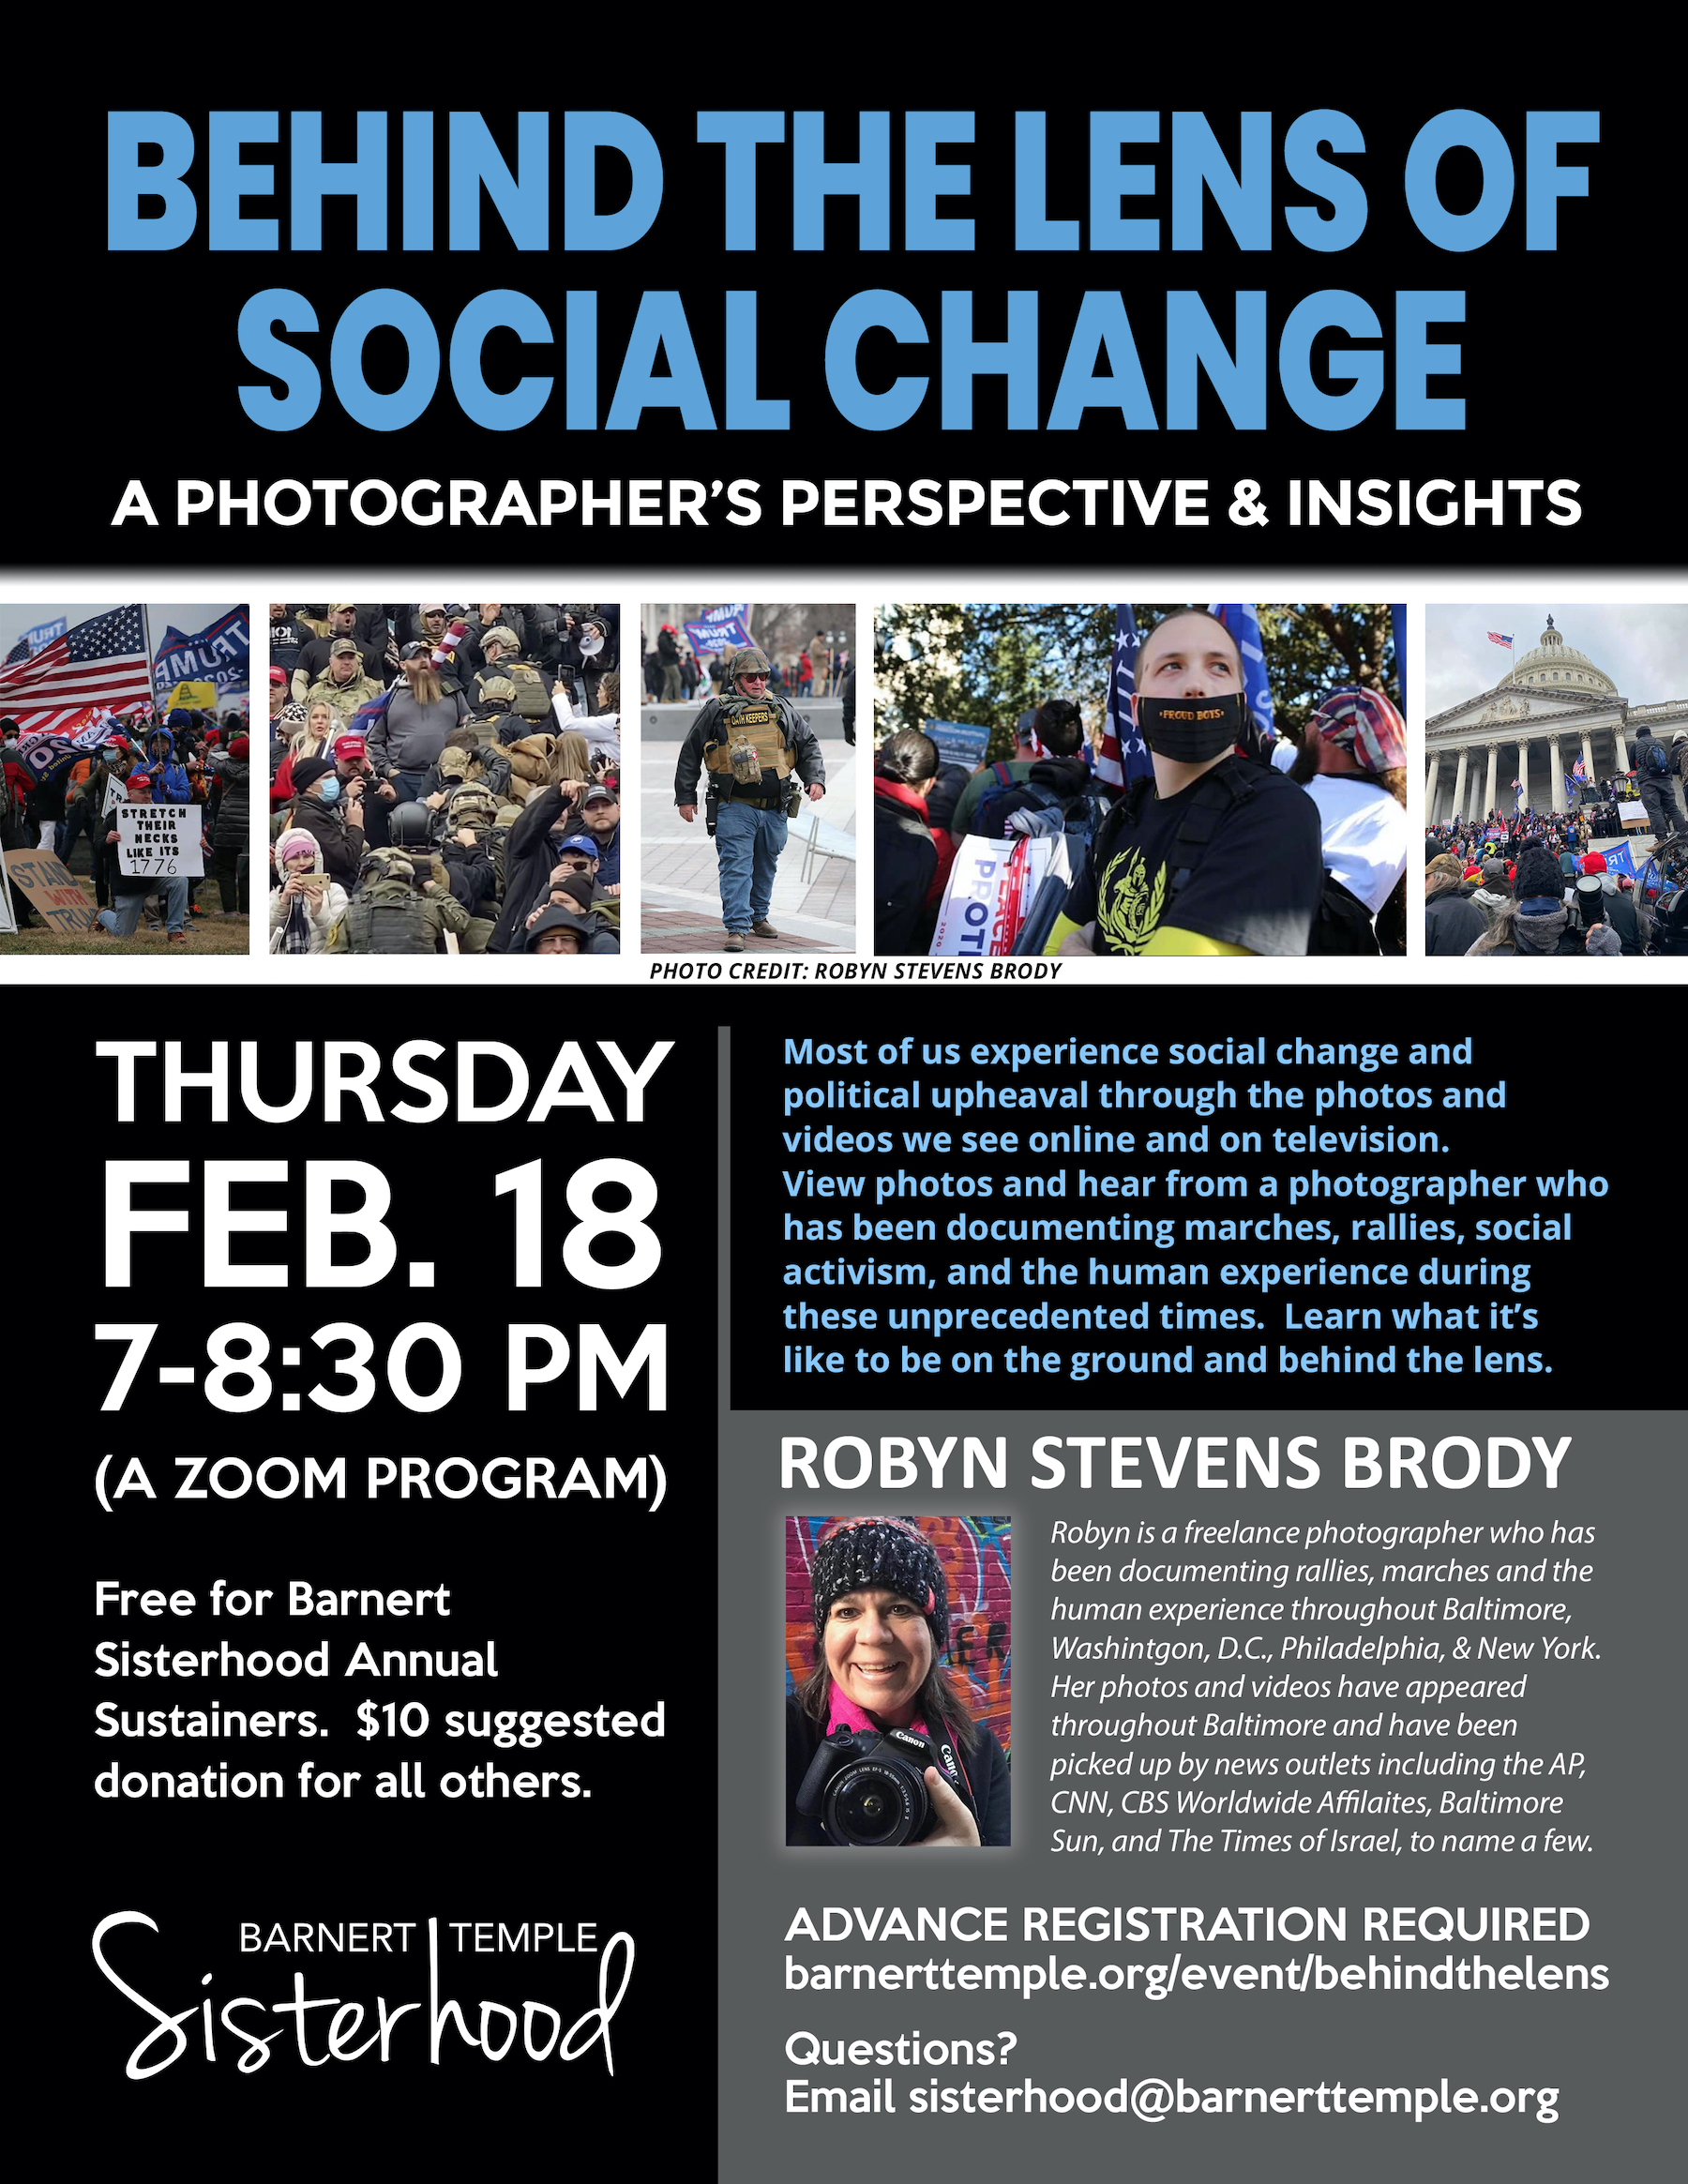 Behind the Lens of Social Change